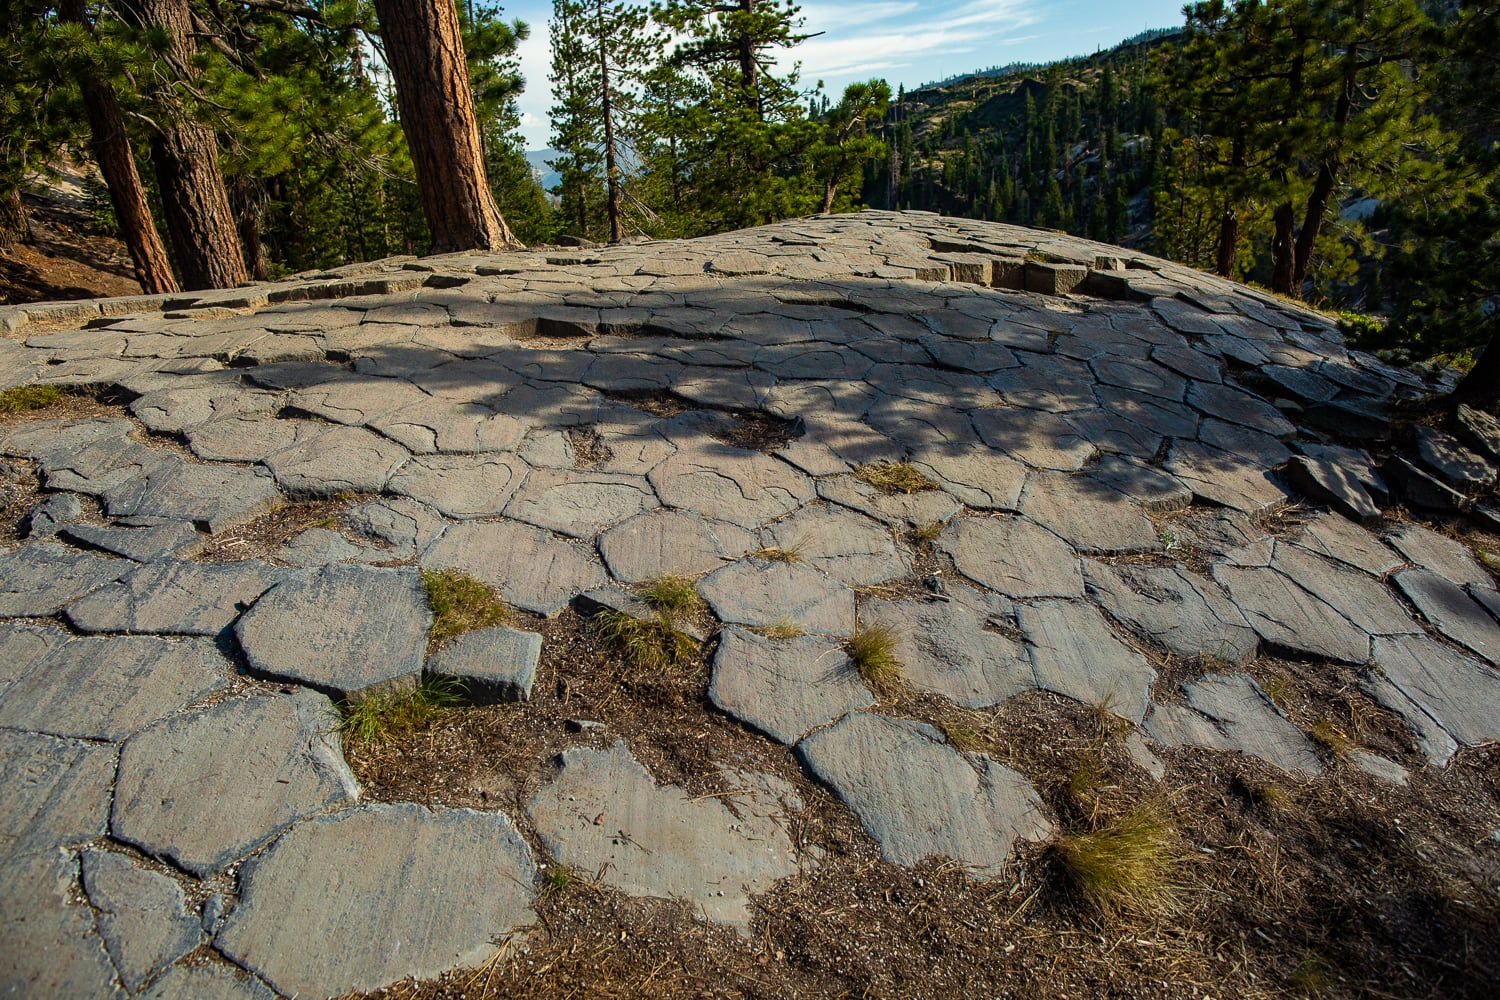 A natural hexagonal tile floor in the woods at Devil's postpile.